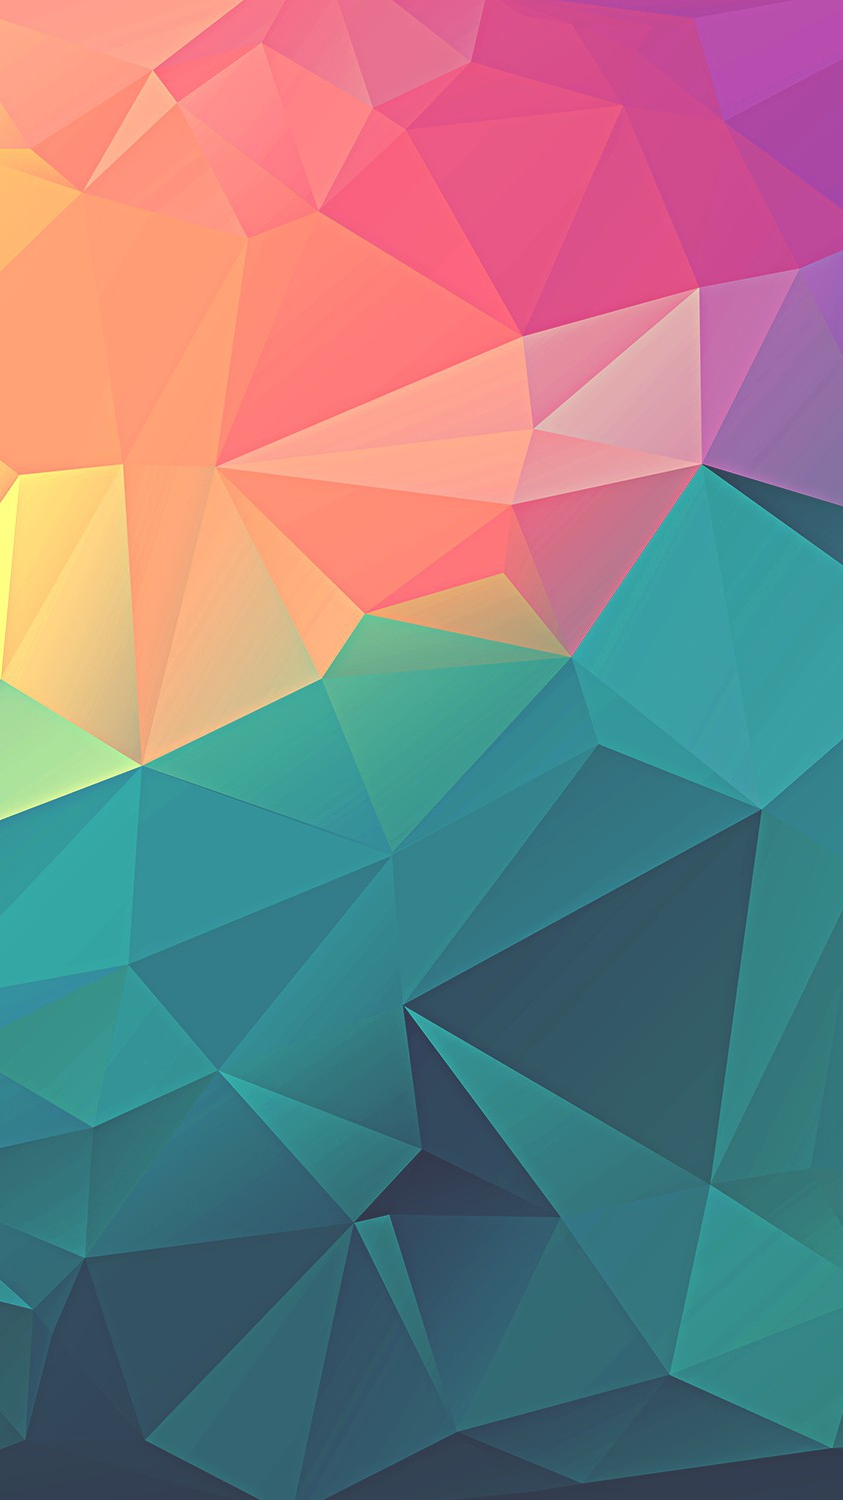 Cute Pineapple Iphone Wallpaper Colorful Polygon Geometric Art Iphone Wallpaper Iphone